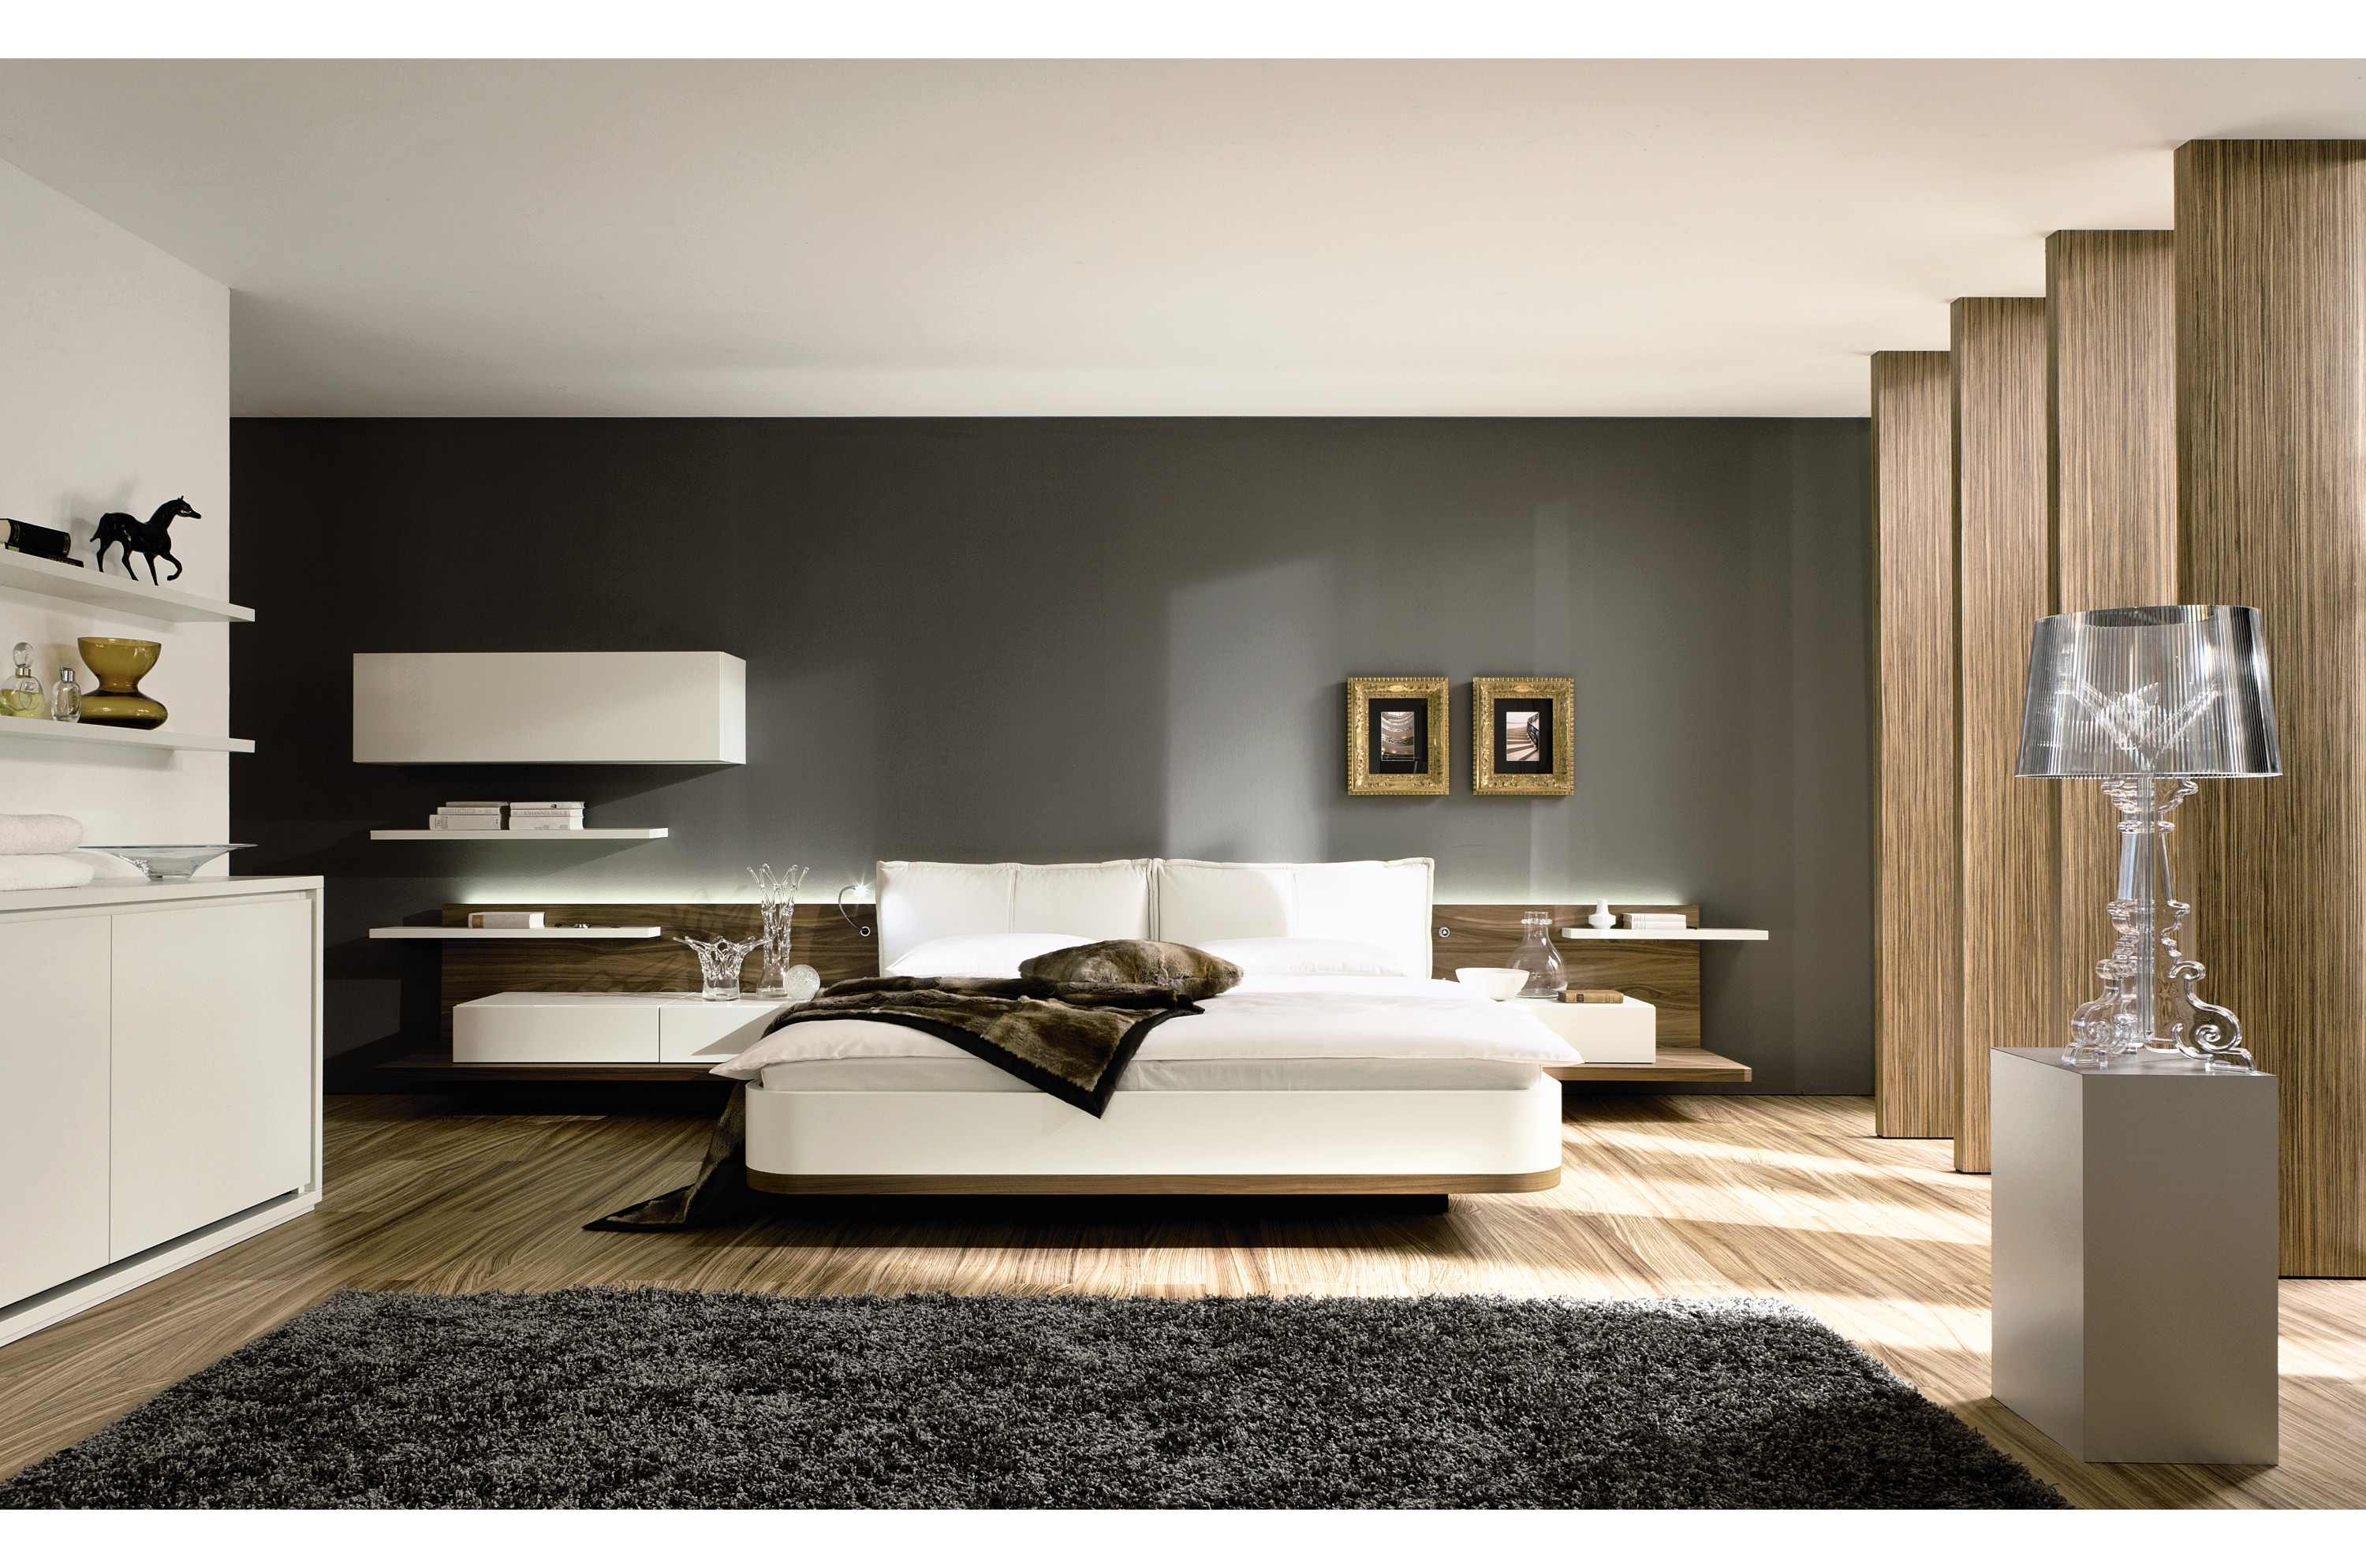 Modern bedroom innovation bedroom ideas interior design for Bedroom images interior designs